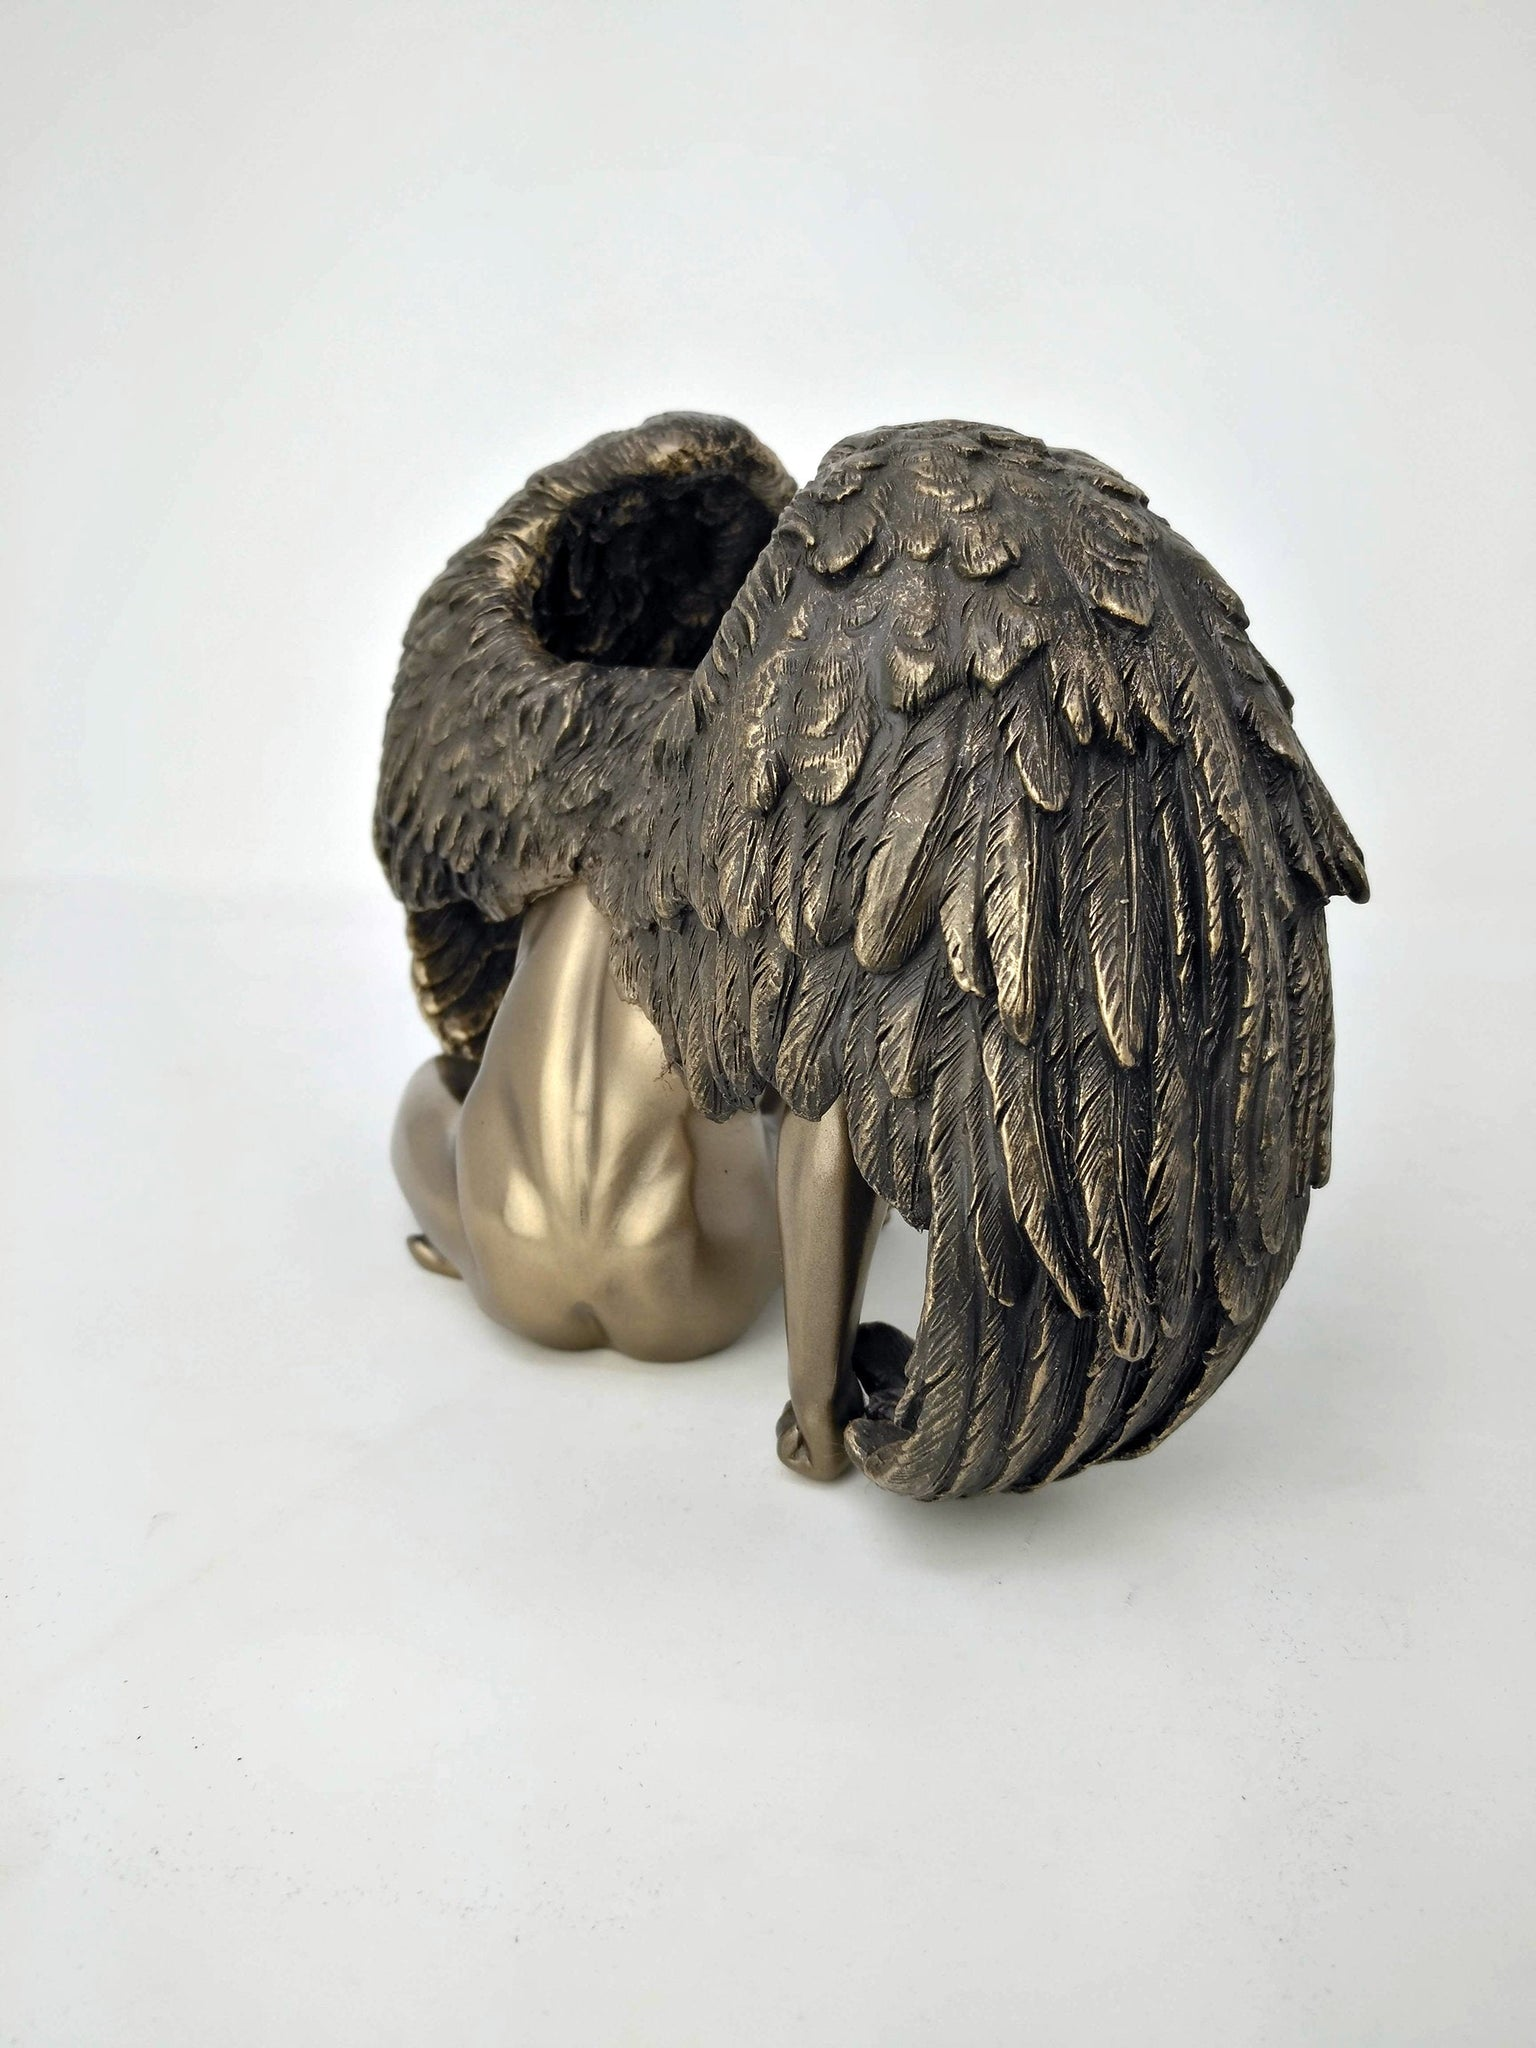 Sitting Nude Winged Male Bronze Statue - Modern Male Body Art with Angel Wings Statue - 7.5 inches / 19cm